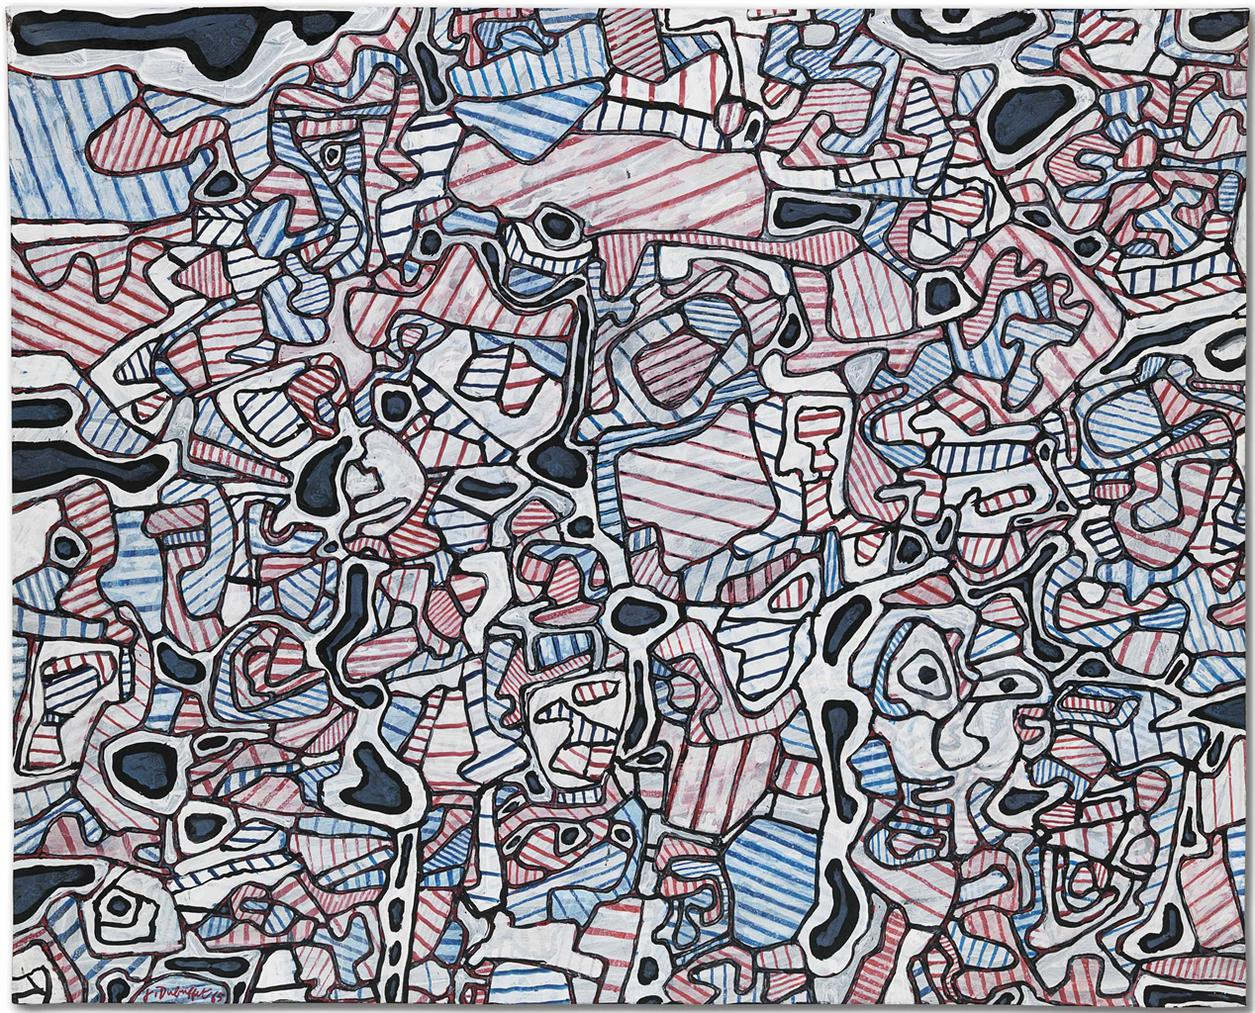 Jean Dubuffet-Partition-1965